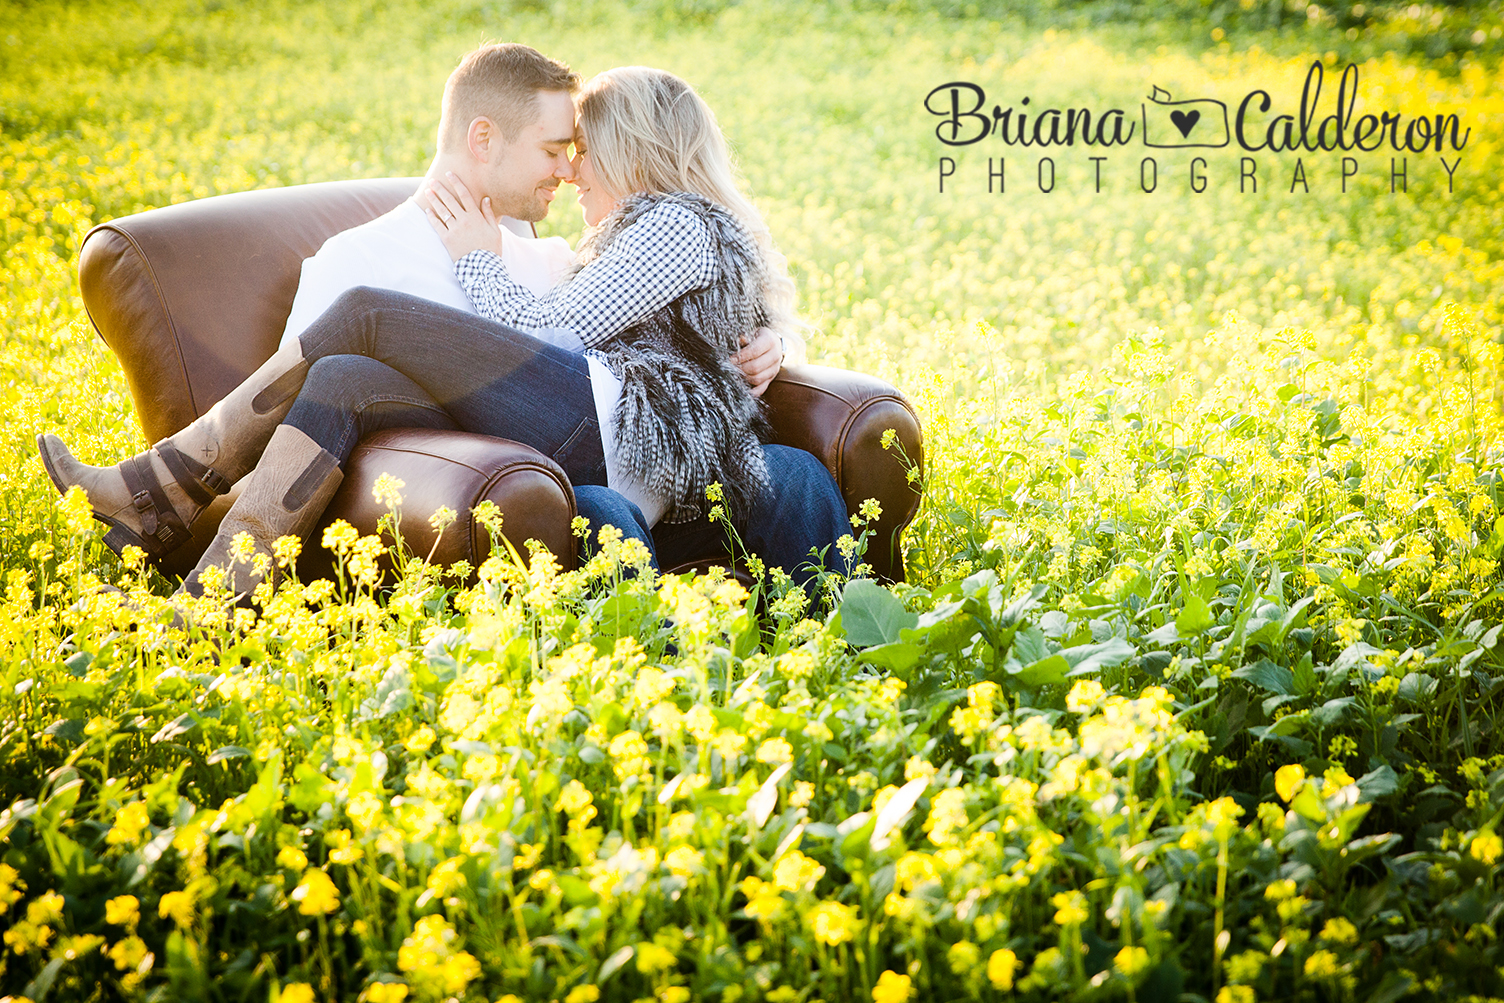 Country style Engagement photo session in San Jose, CA.  Pictures by Briana Calderon Photography based in the San Francisco Bay Area.